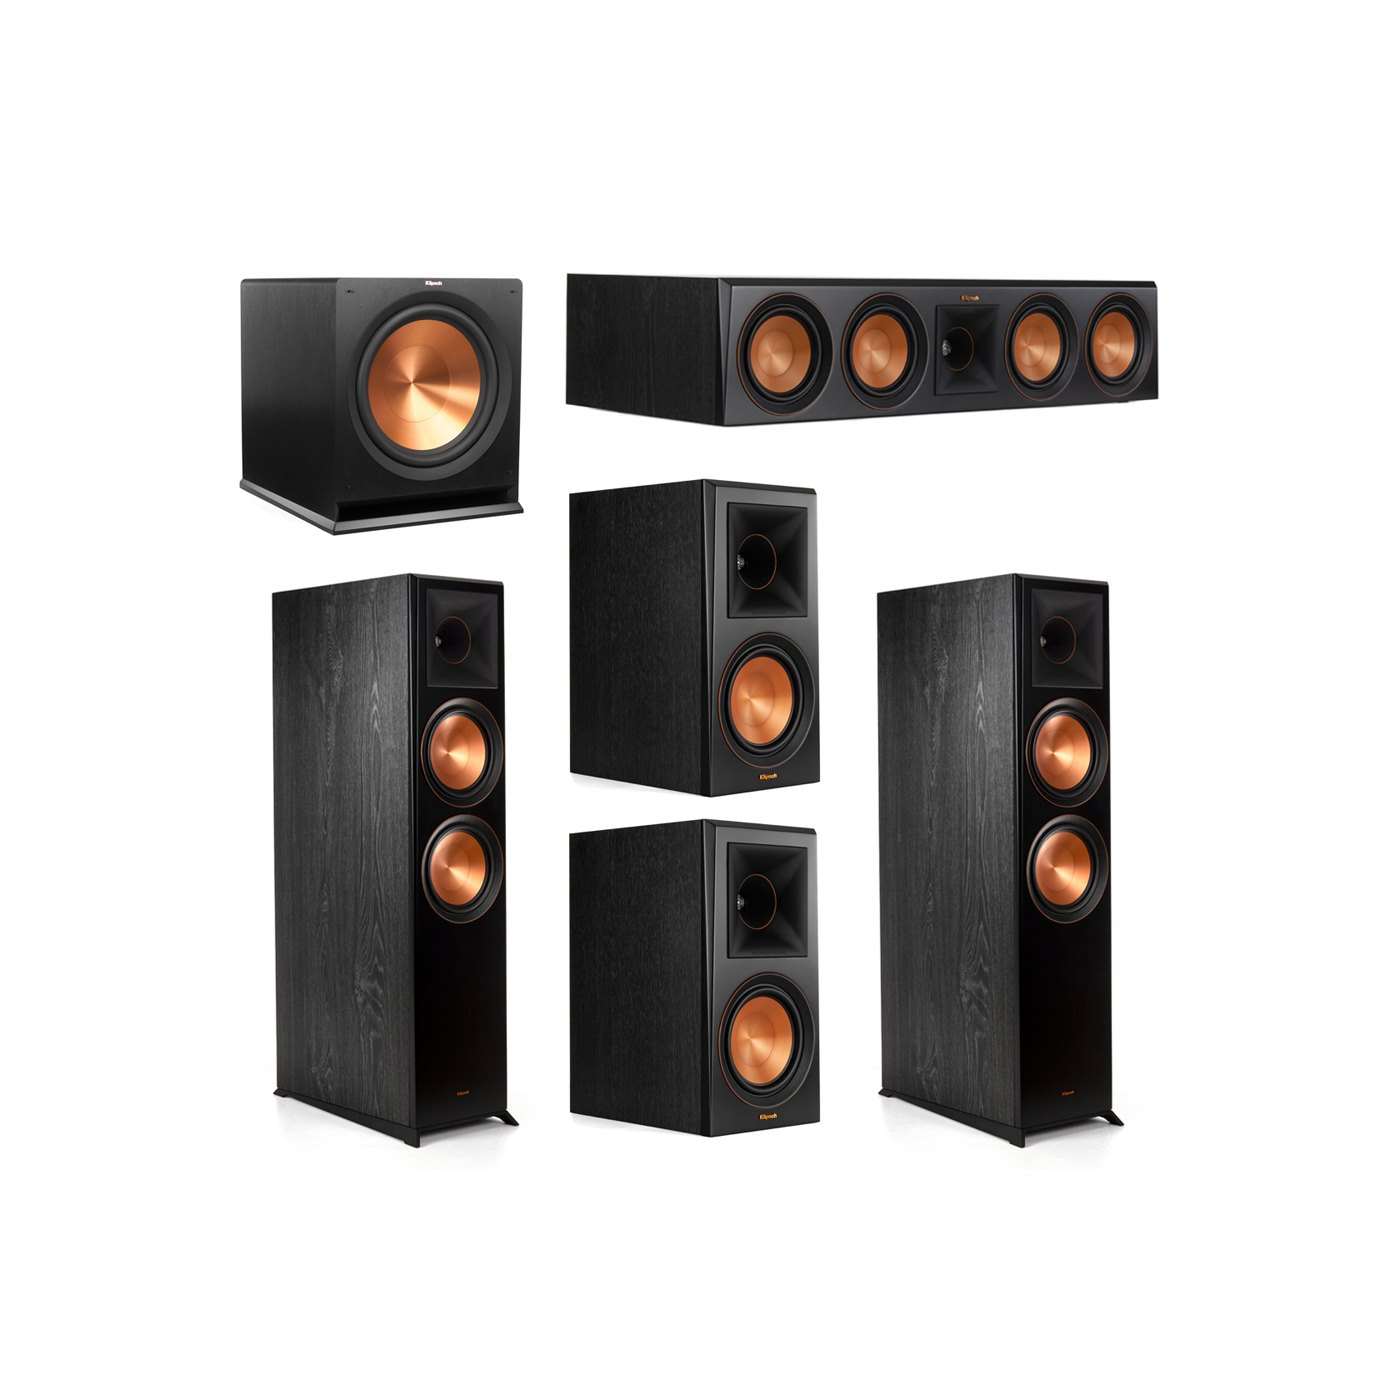 Klipsch 5.1.2 System - 2 RP-8060FA Dolby Atmos Speakers, 1 RP-504C, 2 RP-600M Speakers, 1 R-115SW